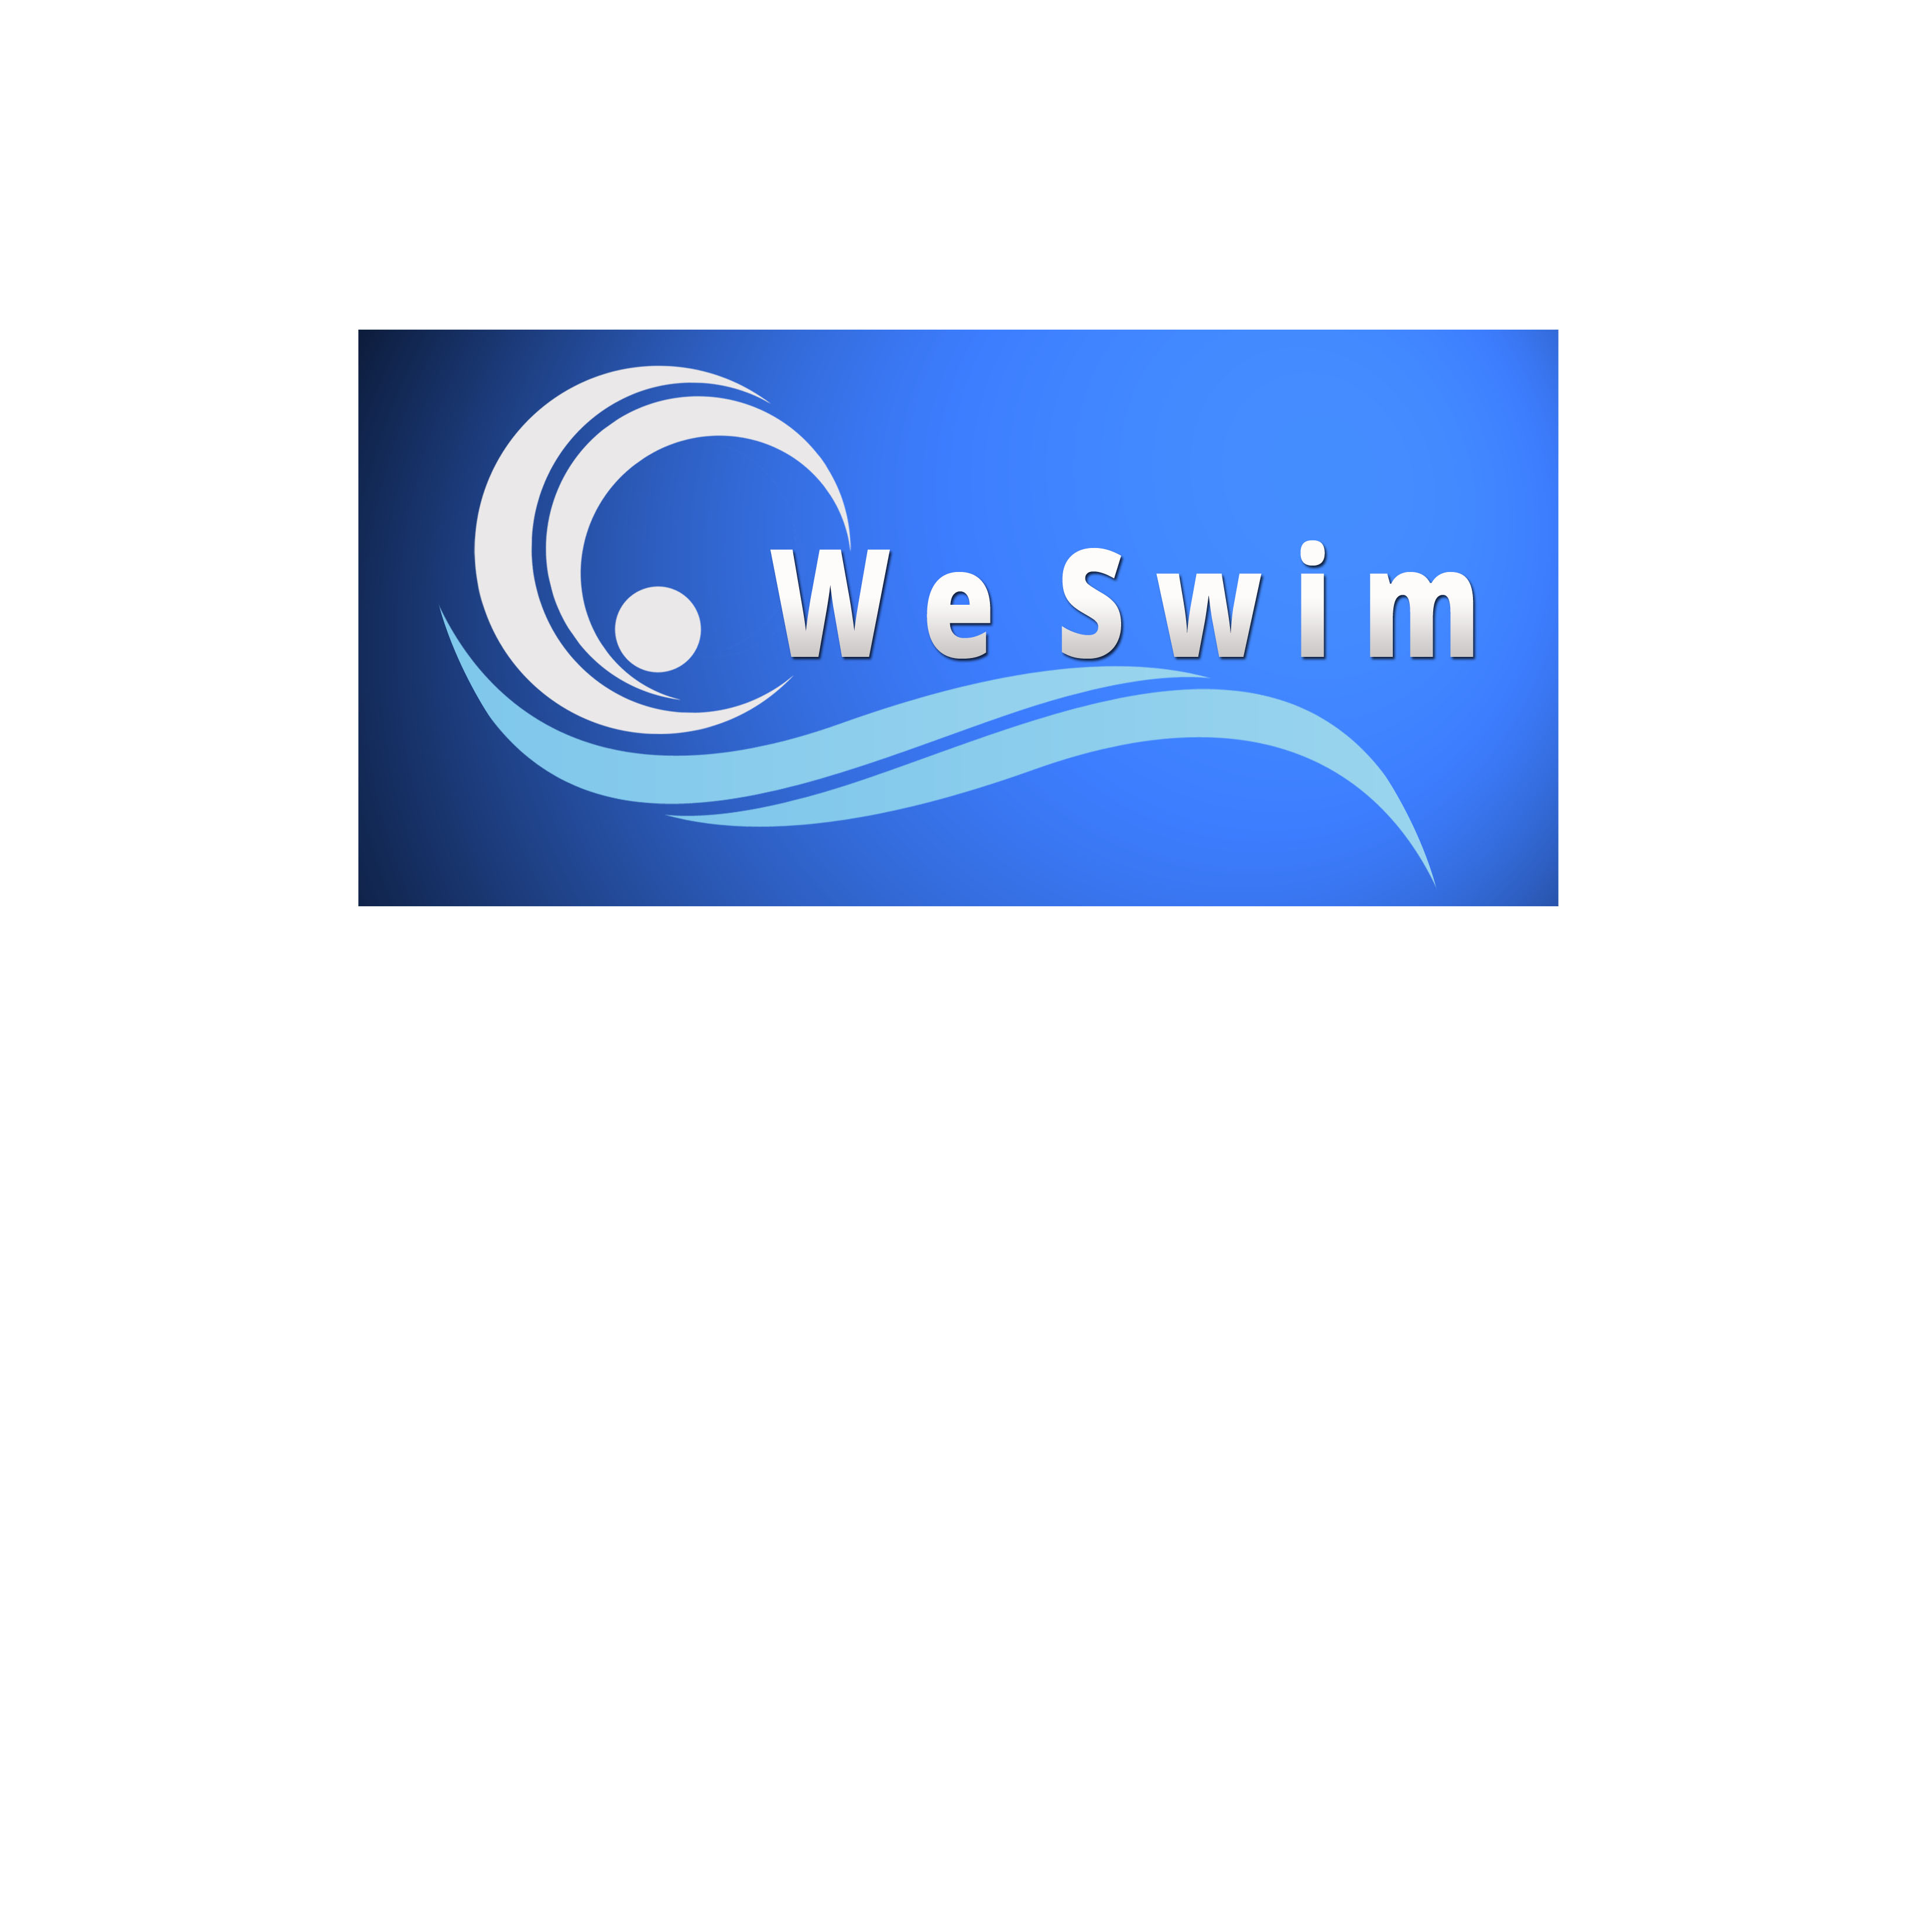 Logo Design by Allan Esclamado - Entry No. 2 in the Logo Design Contest Captivating Logo Design for We Swim.